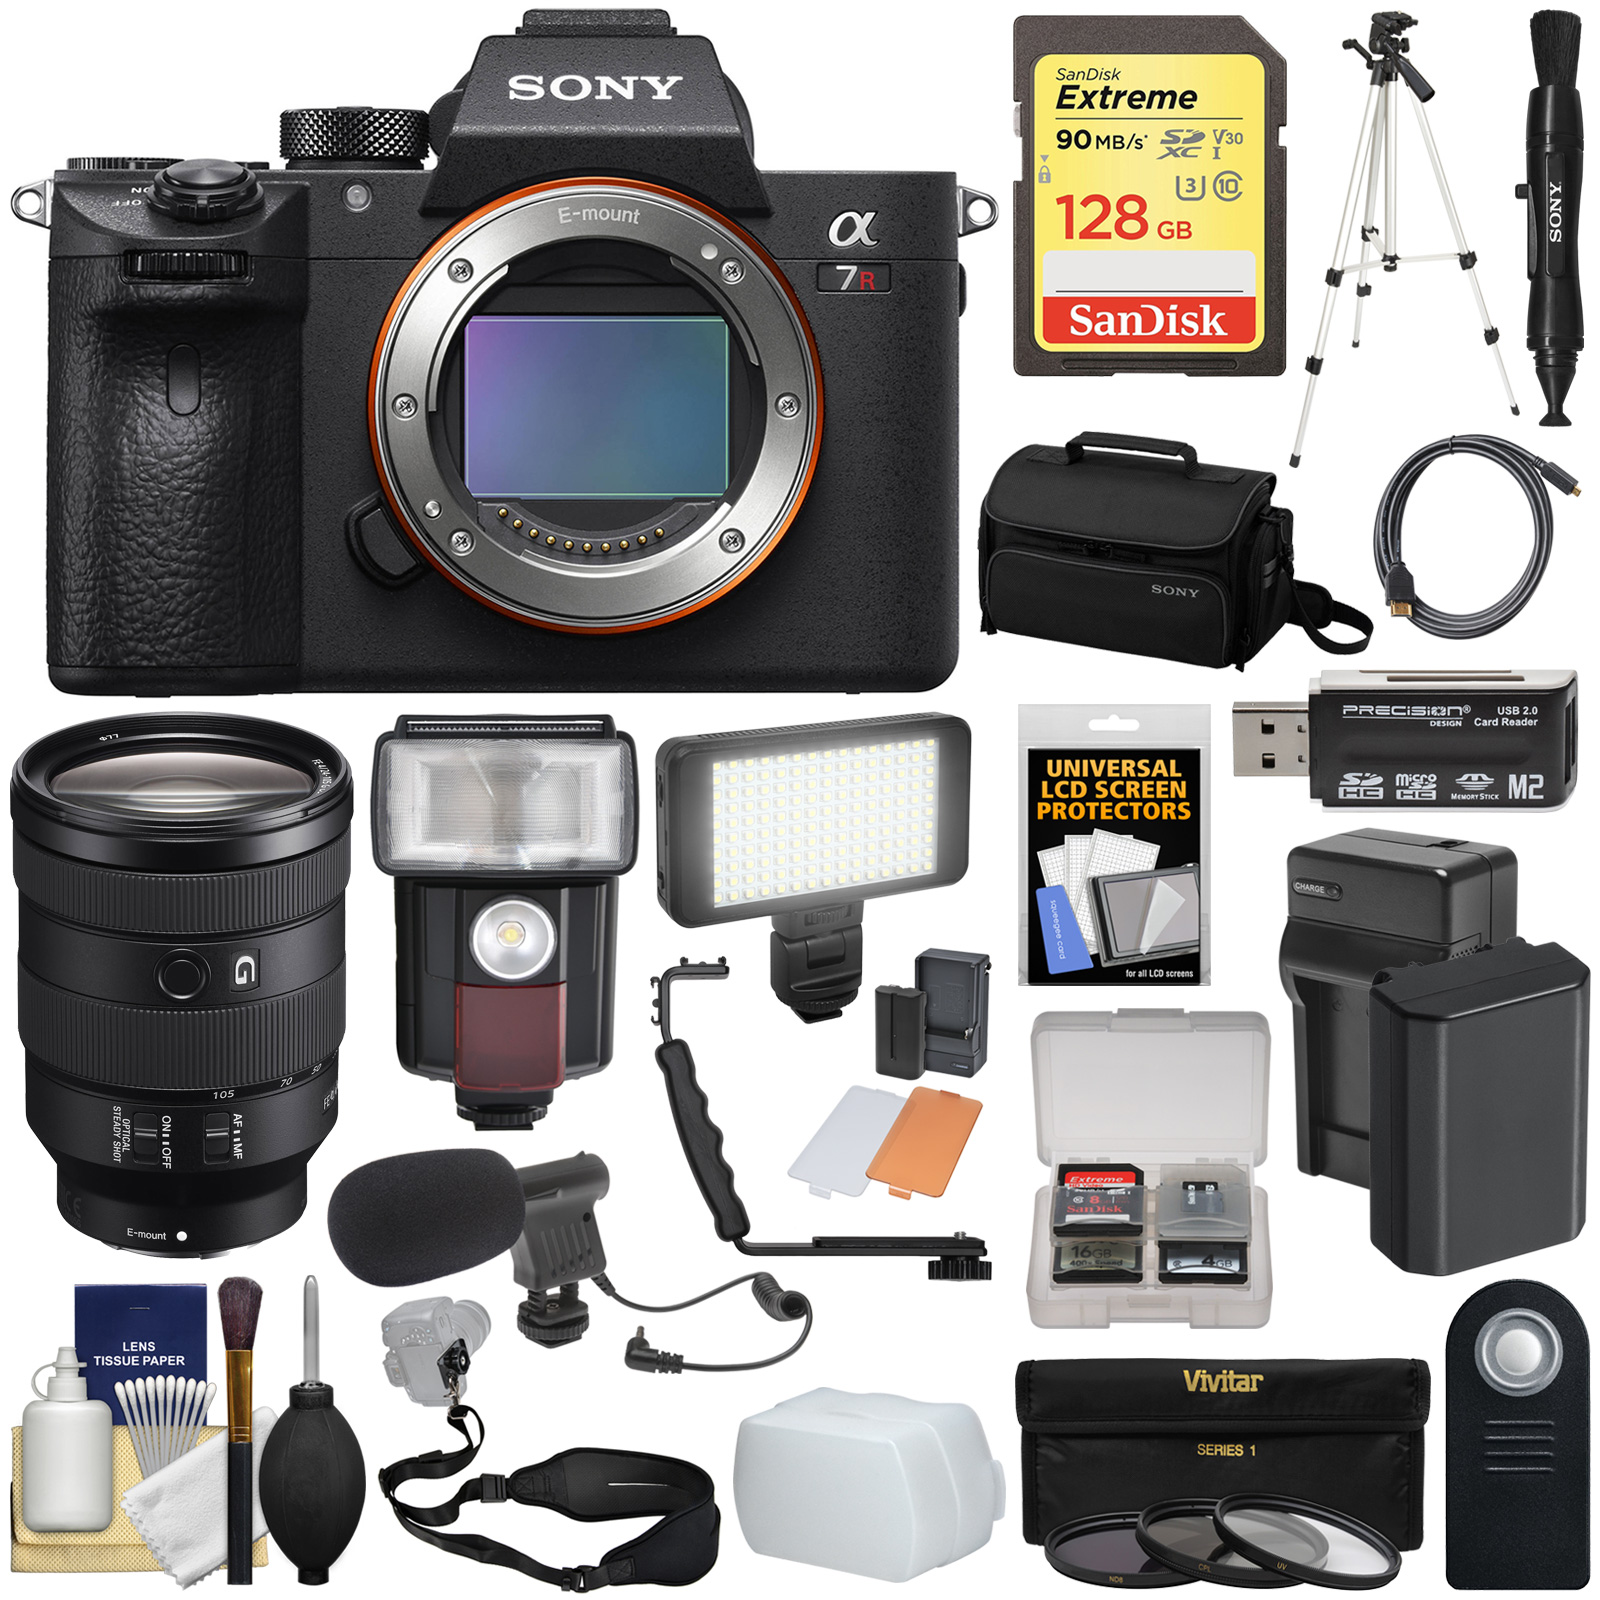 Sony Alpha A7R III 4K Wi-Fi Digital Camera Body with FE 24-105mm Lens + 128GB + Battery & Charger + Case + Tripod + Filters + Flash + LED + Mic + Kit